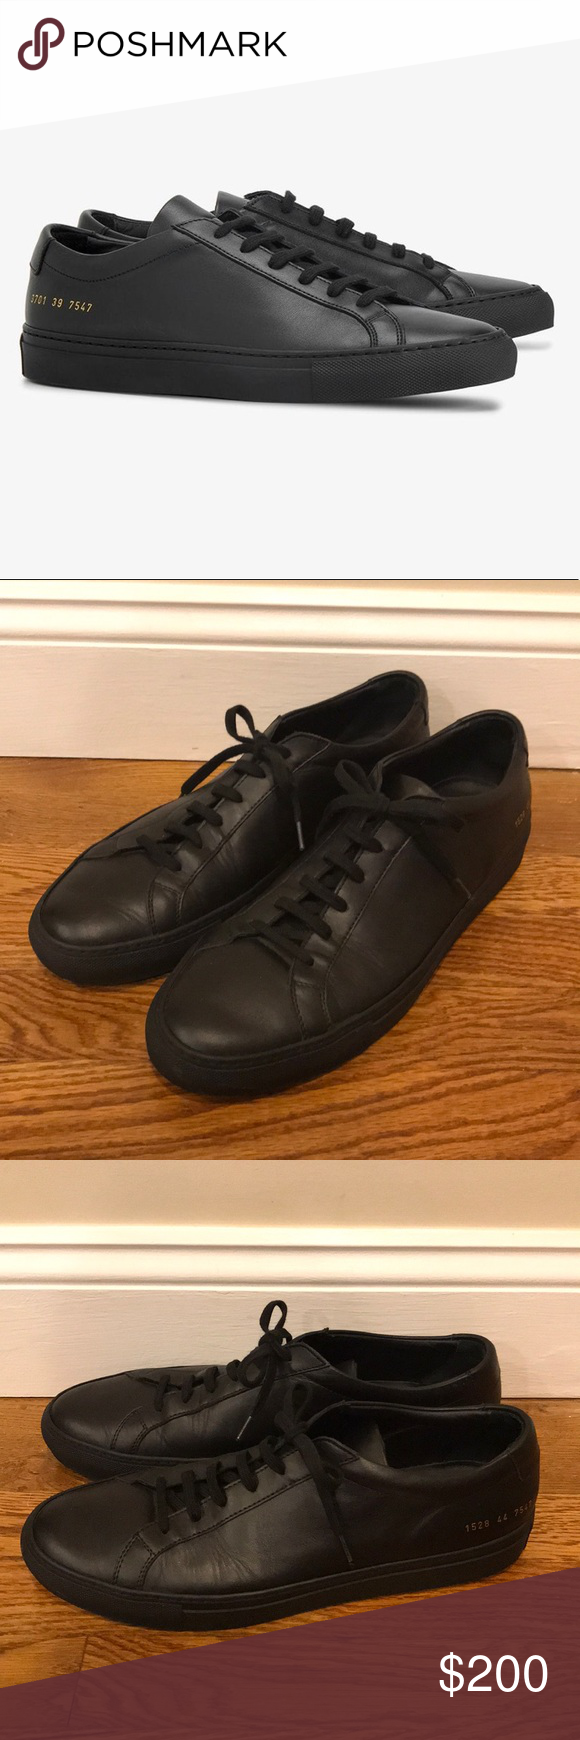 Common Projects Achilles Low Leather